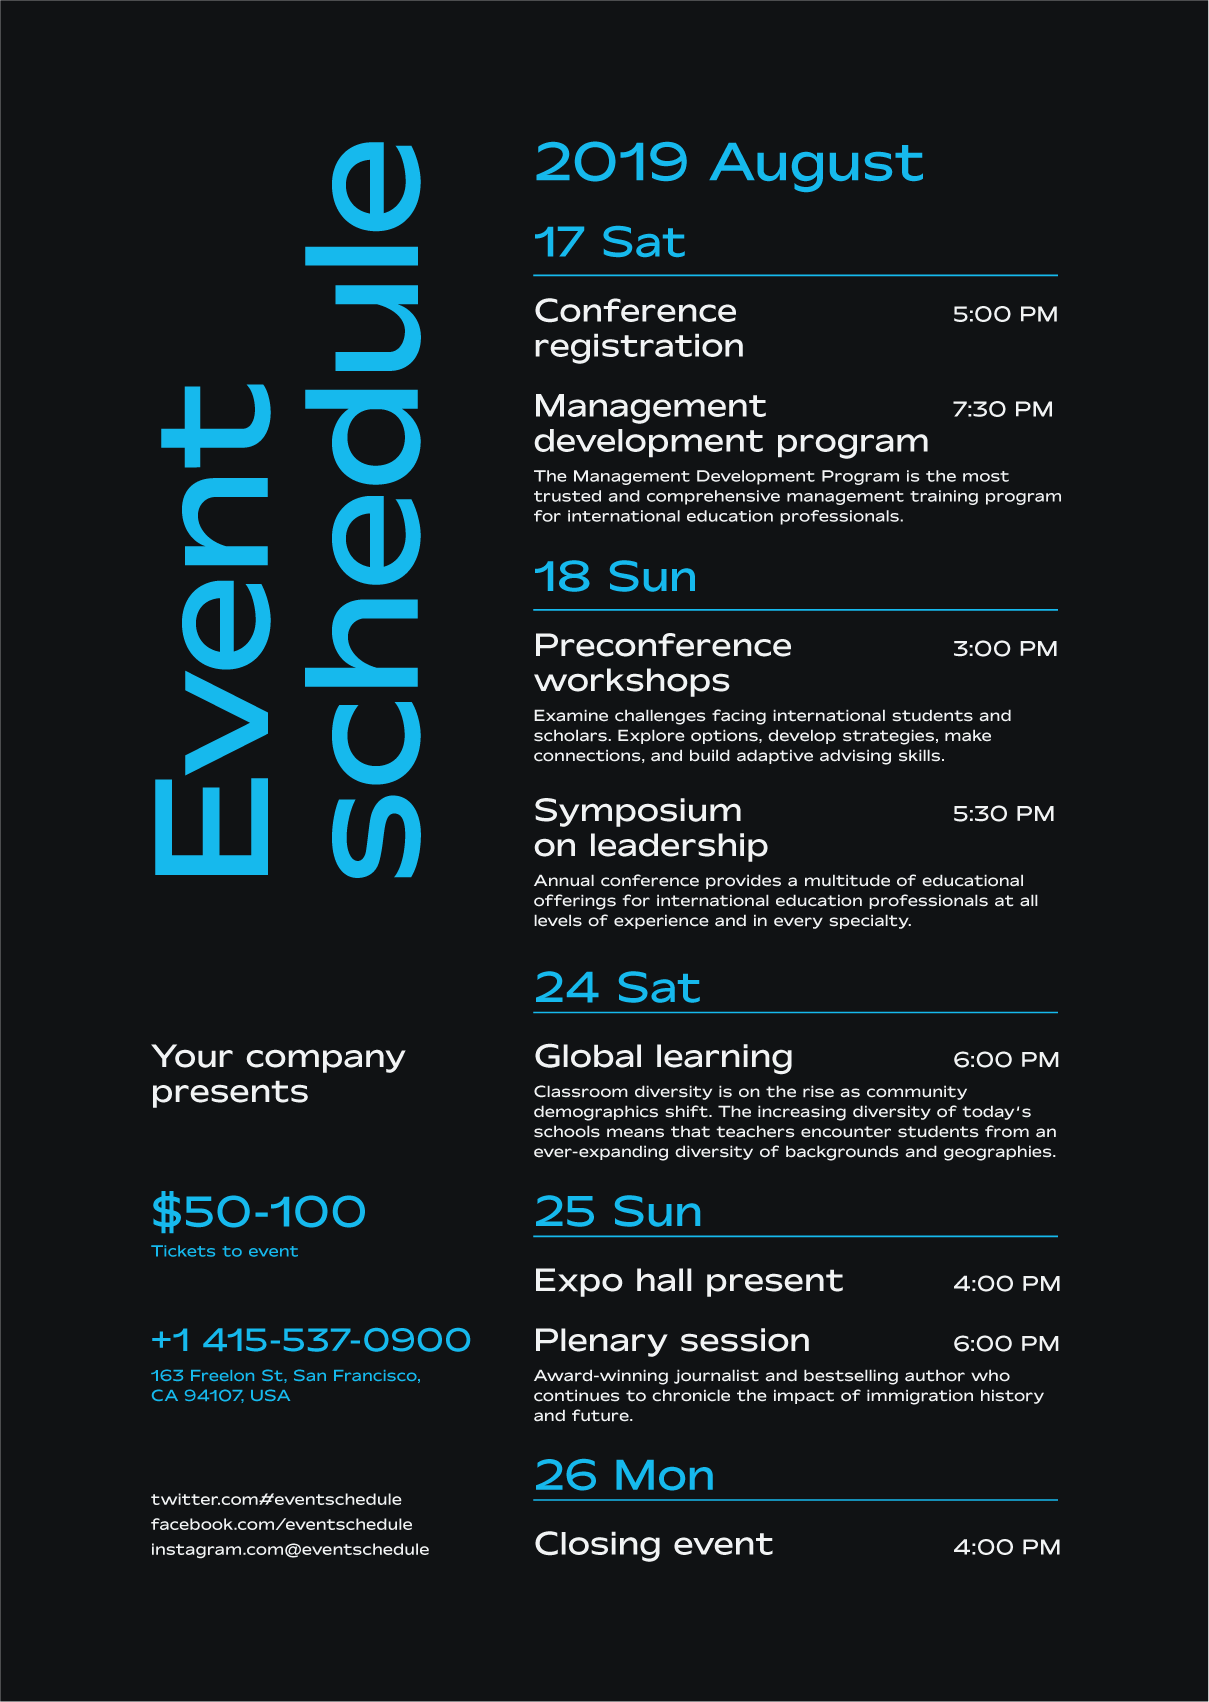 Schedule Event Poster Template Event Schedule Design Event Poster Template Conference Design